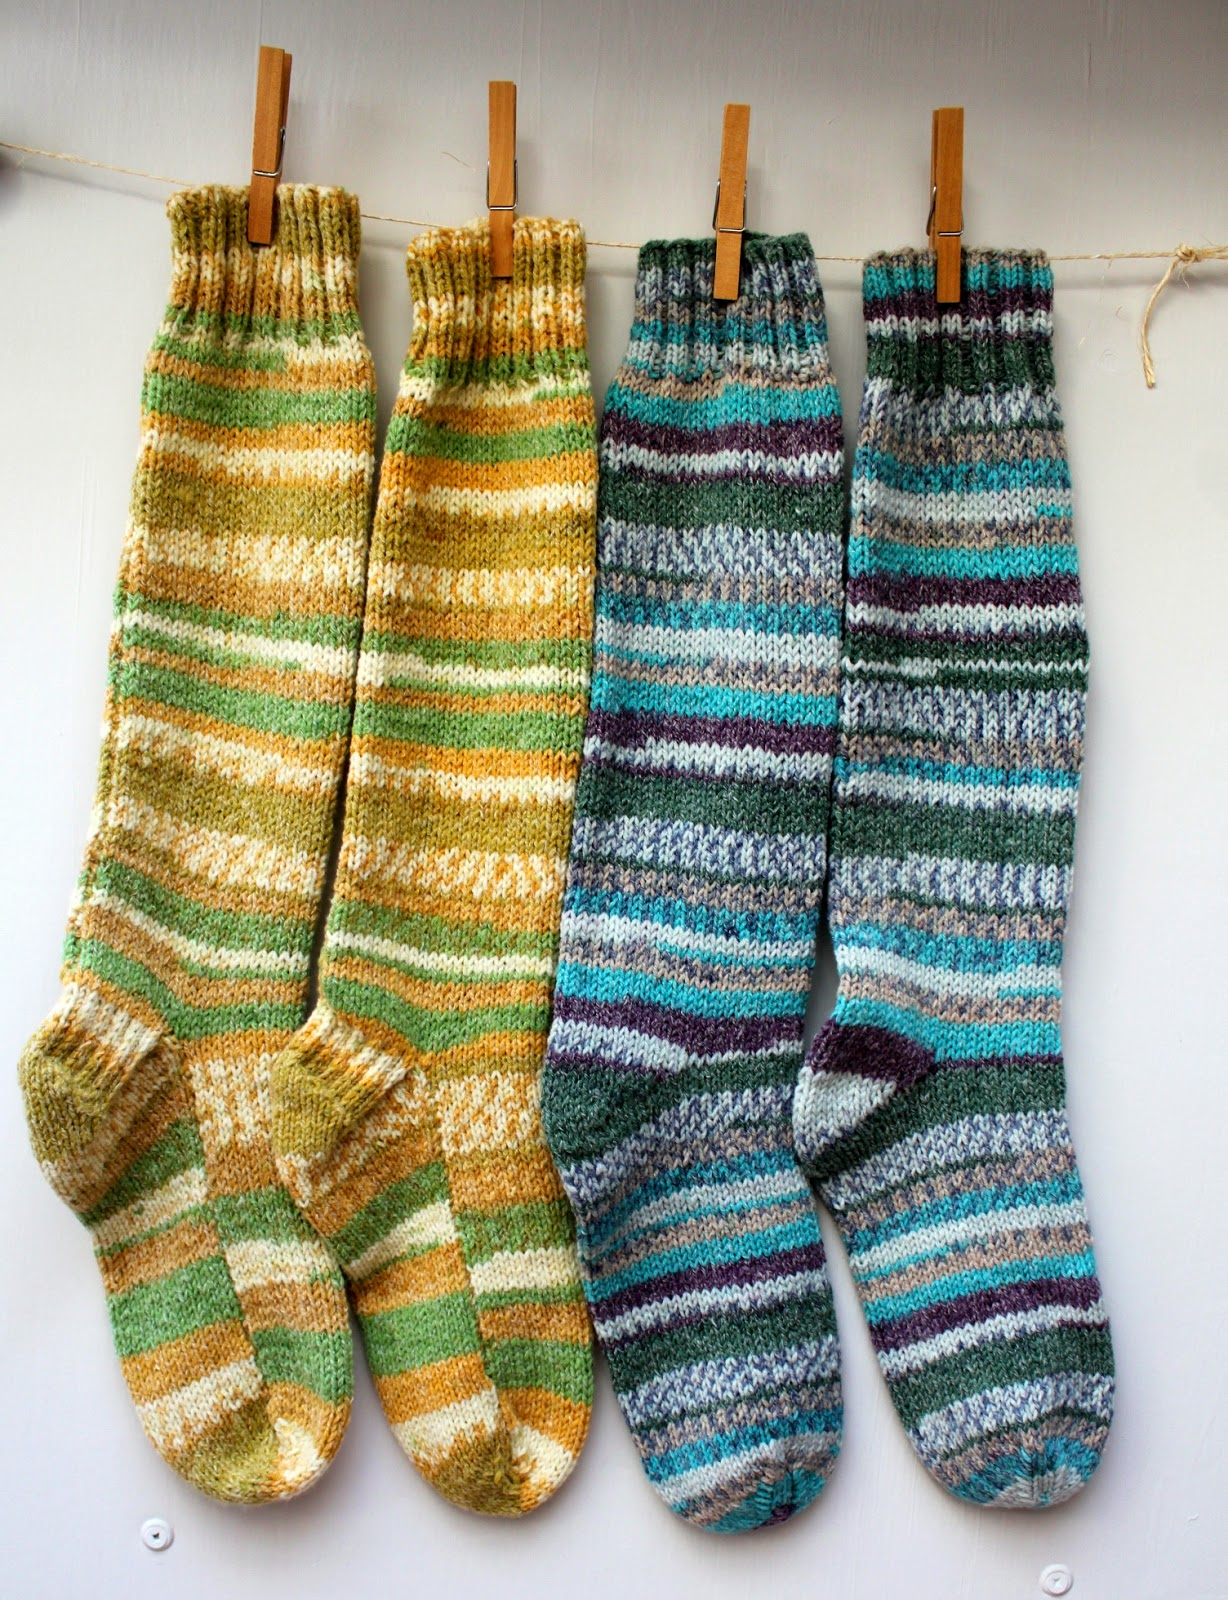 Knitting Patterns For Men s Socks On 4 Needles : Hand Knitted Things: Sirdar Crofter DK Socks on Straight Needles